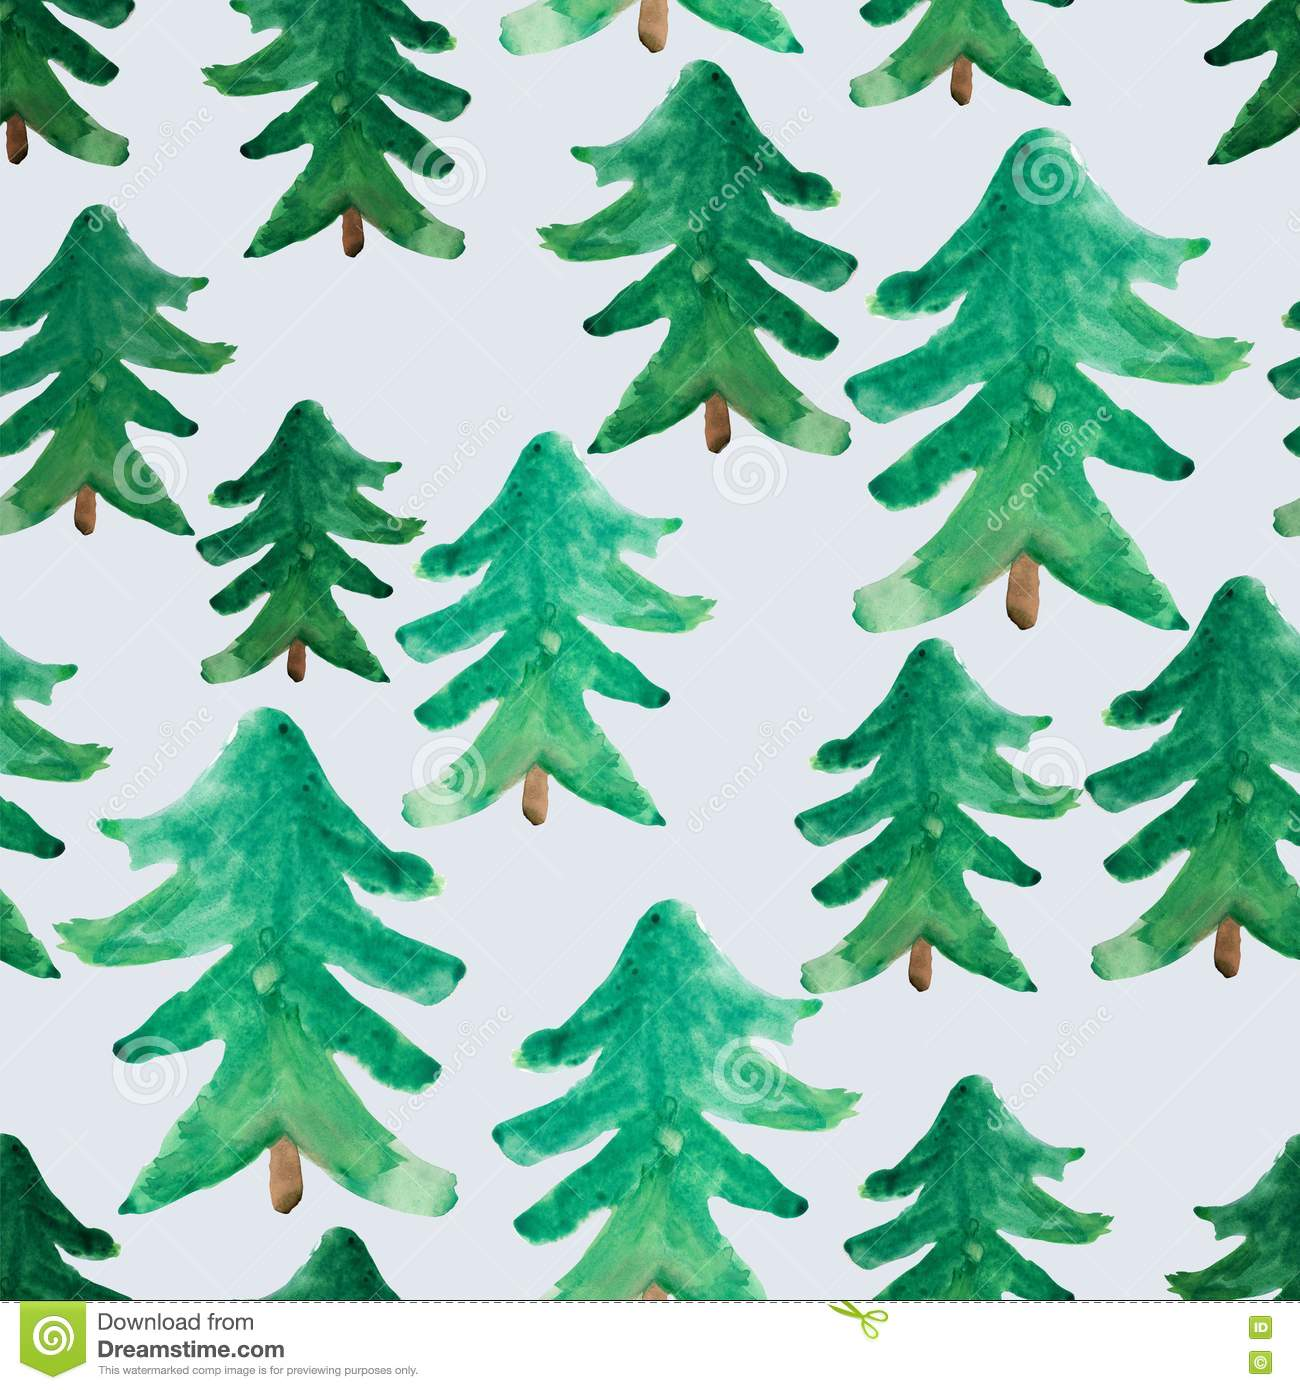 Christmas Tree Background.Watercolor Christmas Trees Seamless Pattern Winter